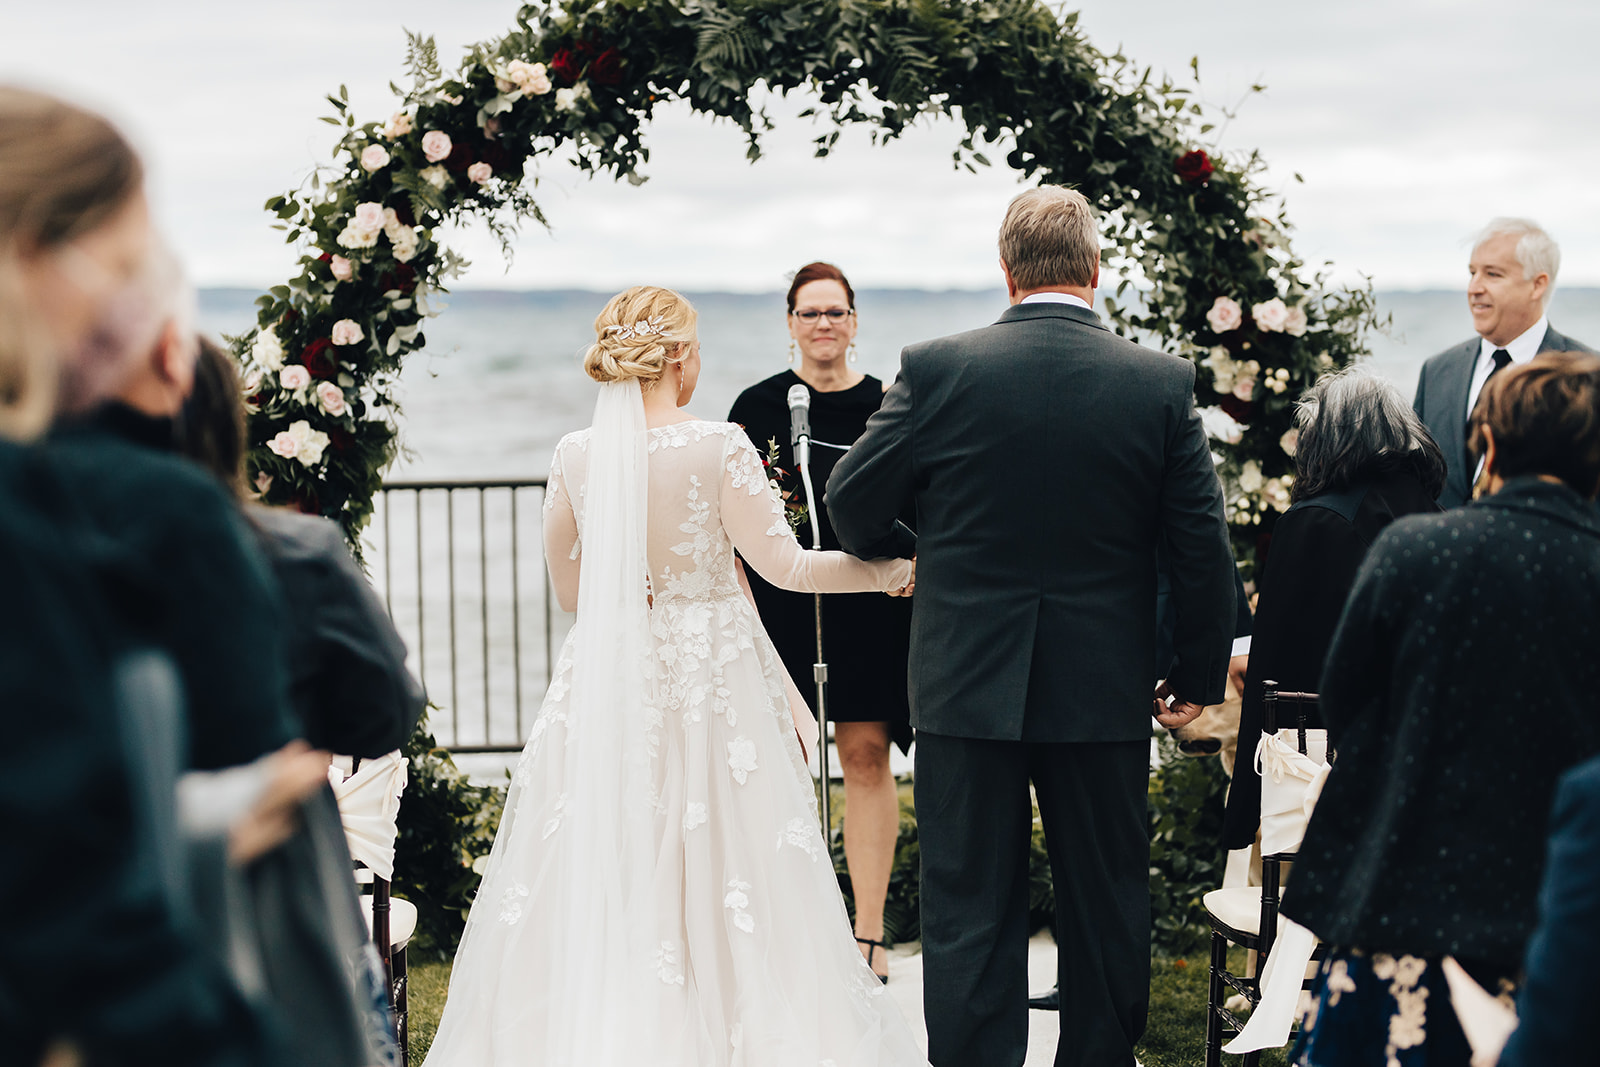 Father of bride giving her away to groom